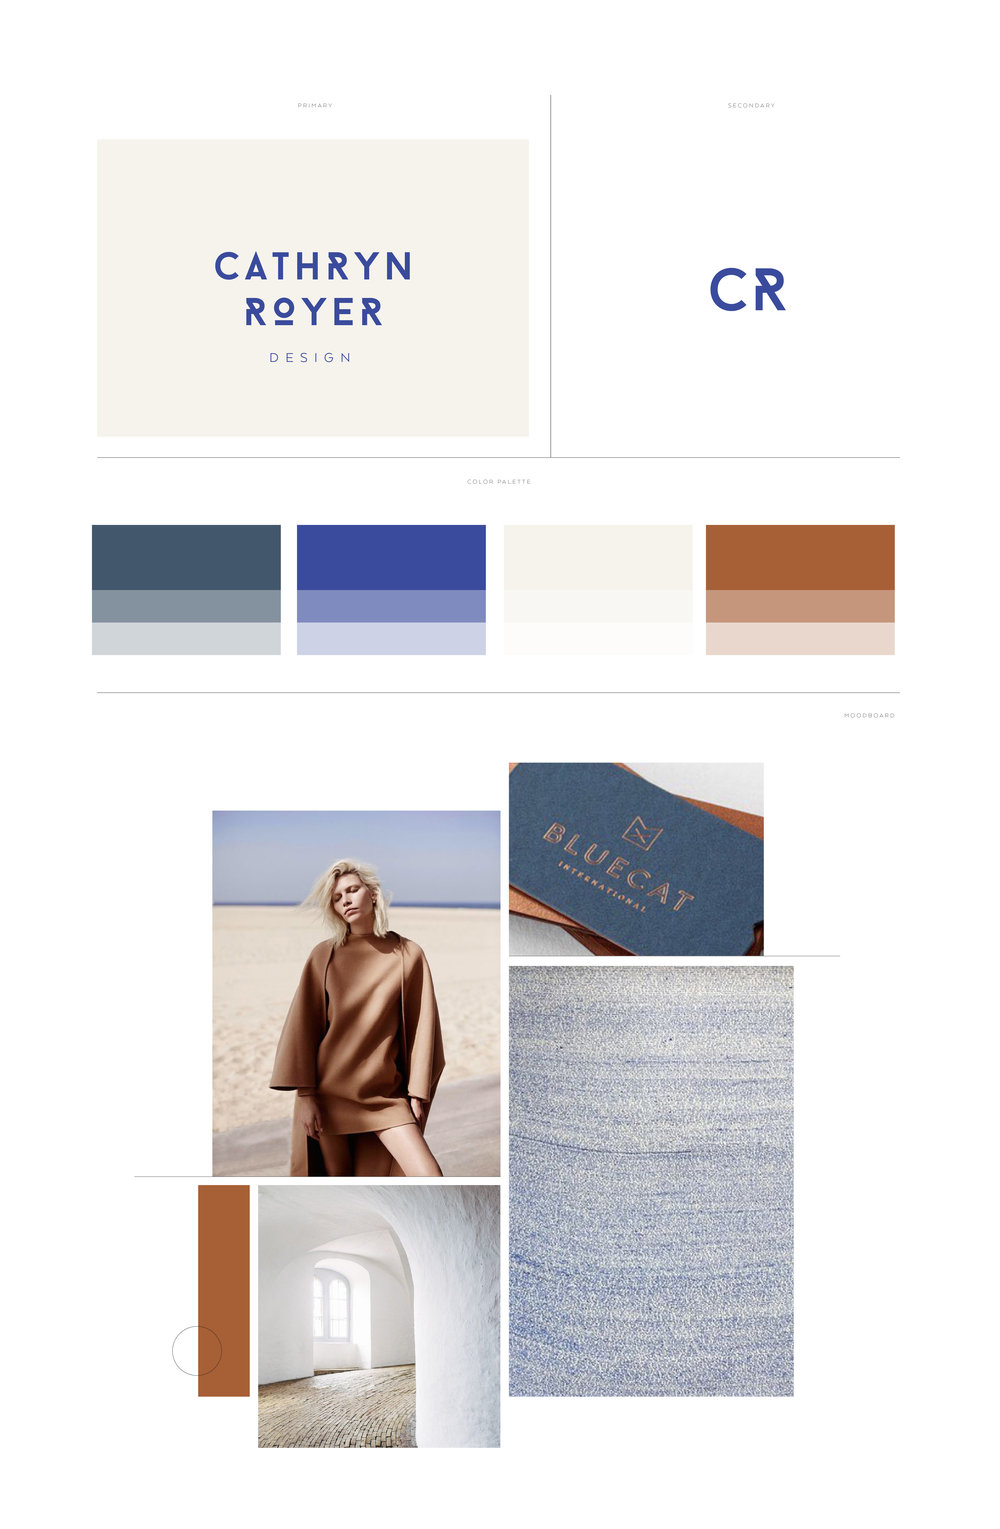 CATHRYNROYER_HONOR_BRANDBOARD_04.jpg